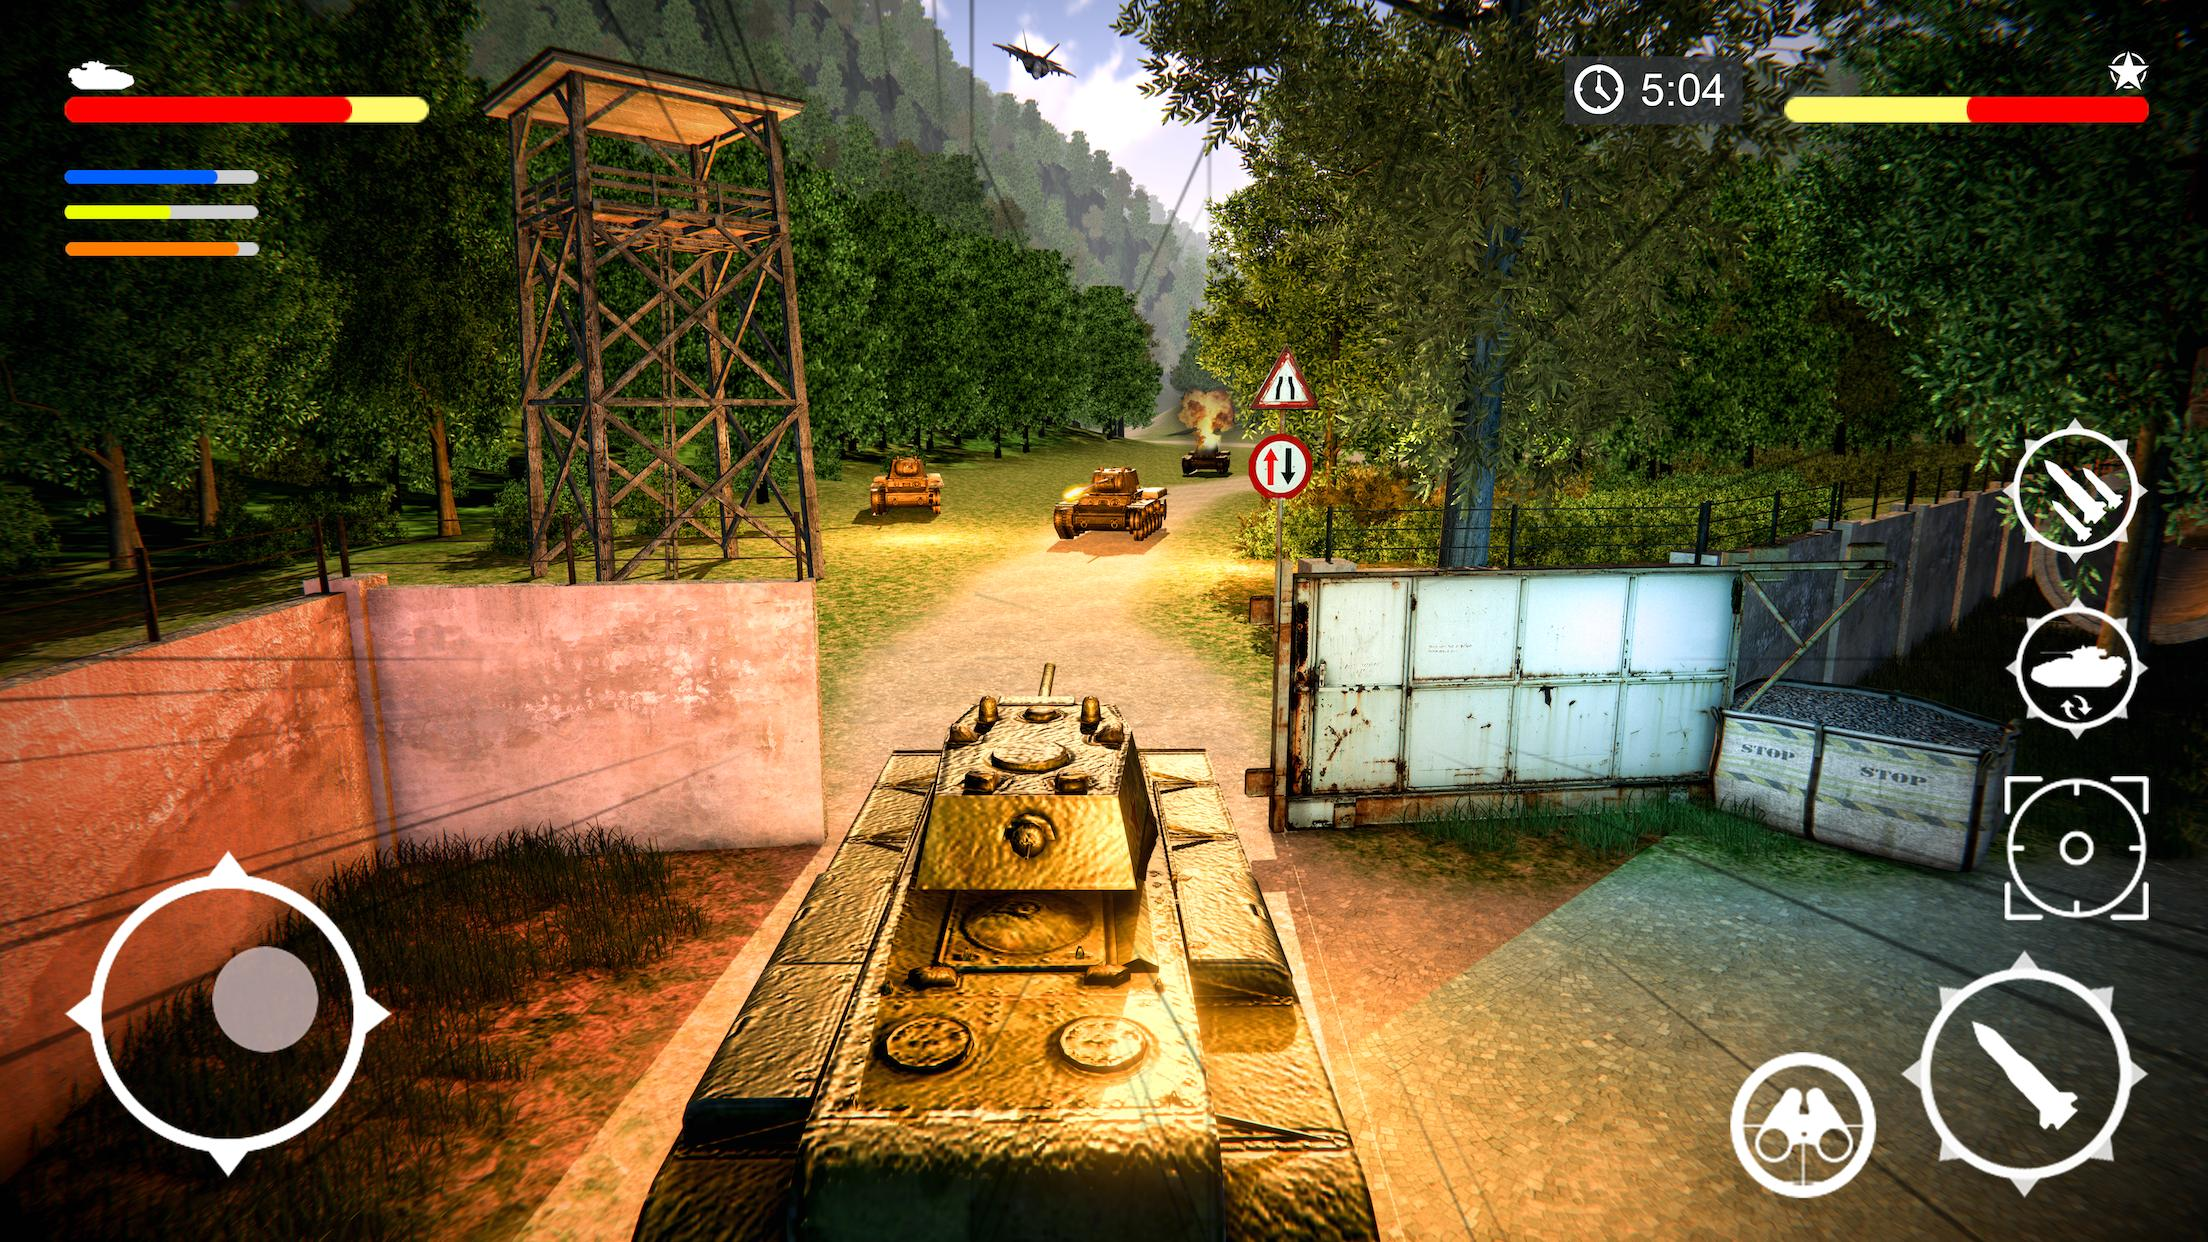 Tank Games 2020 Free Tank Battle Army Combat Games 1.3 Screenshot 11